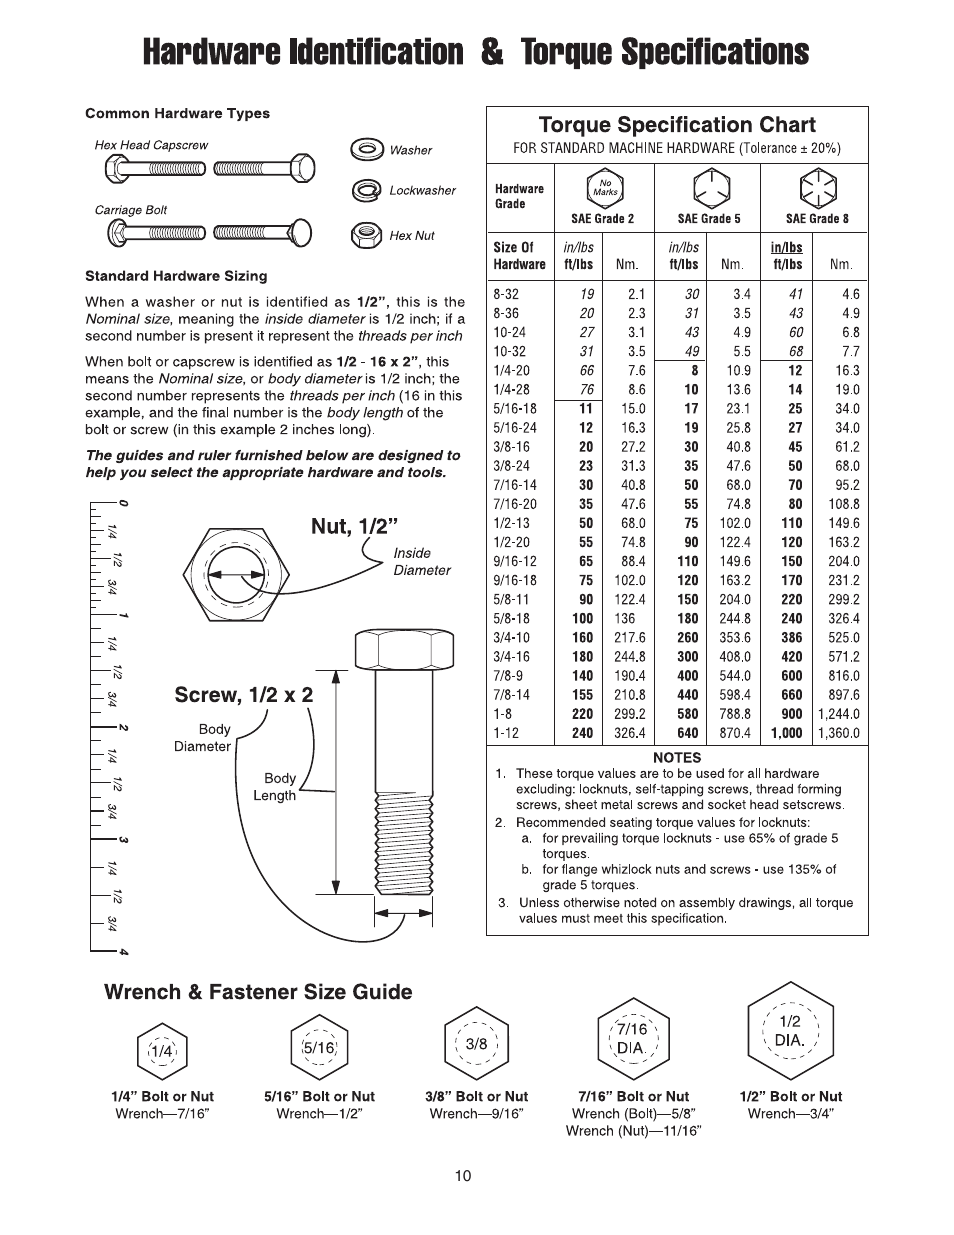 Simplicity Turbo Vacuum Collection System User Manual